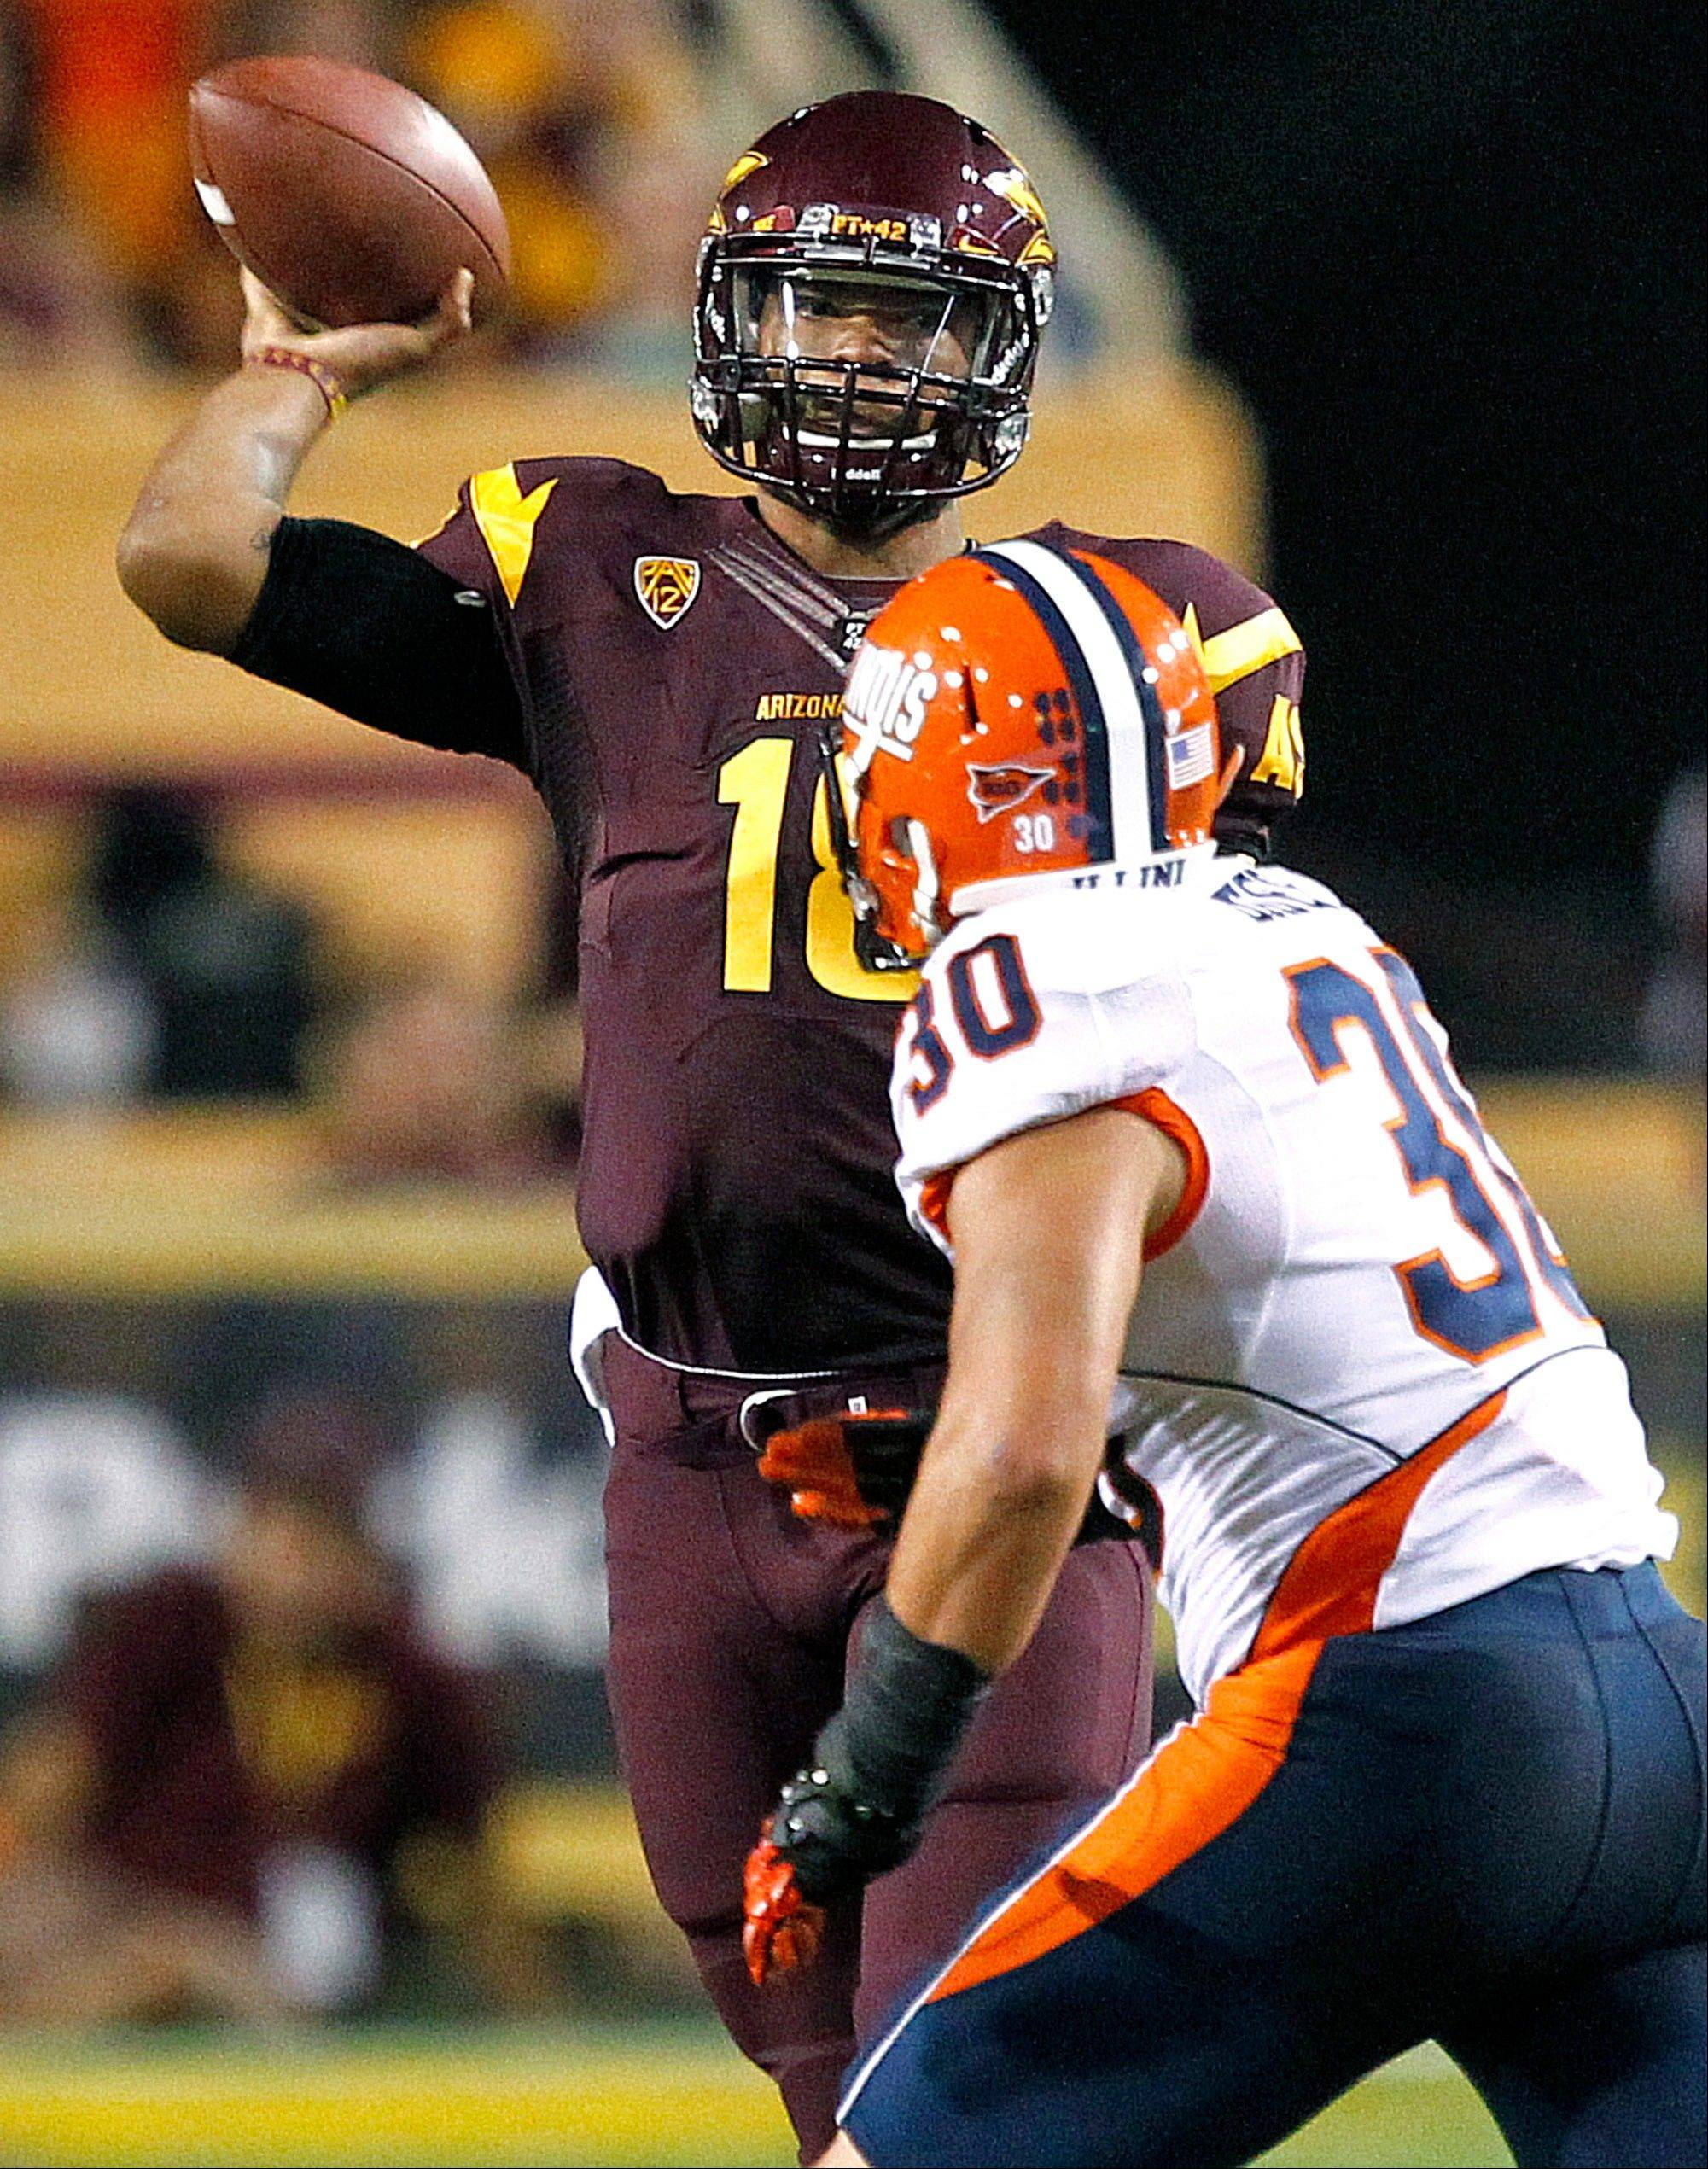 Arizona State quarterback Michael Eubank throws over Illinois linebacker Houston Bates during Saturday's first half in Tempe, Ariz.